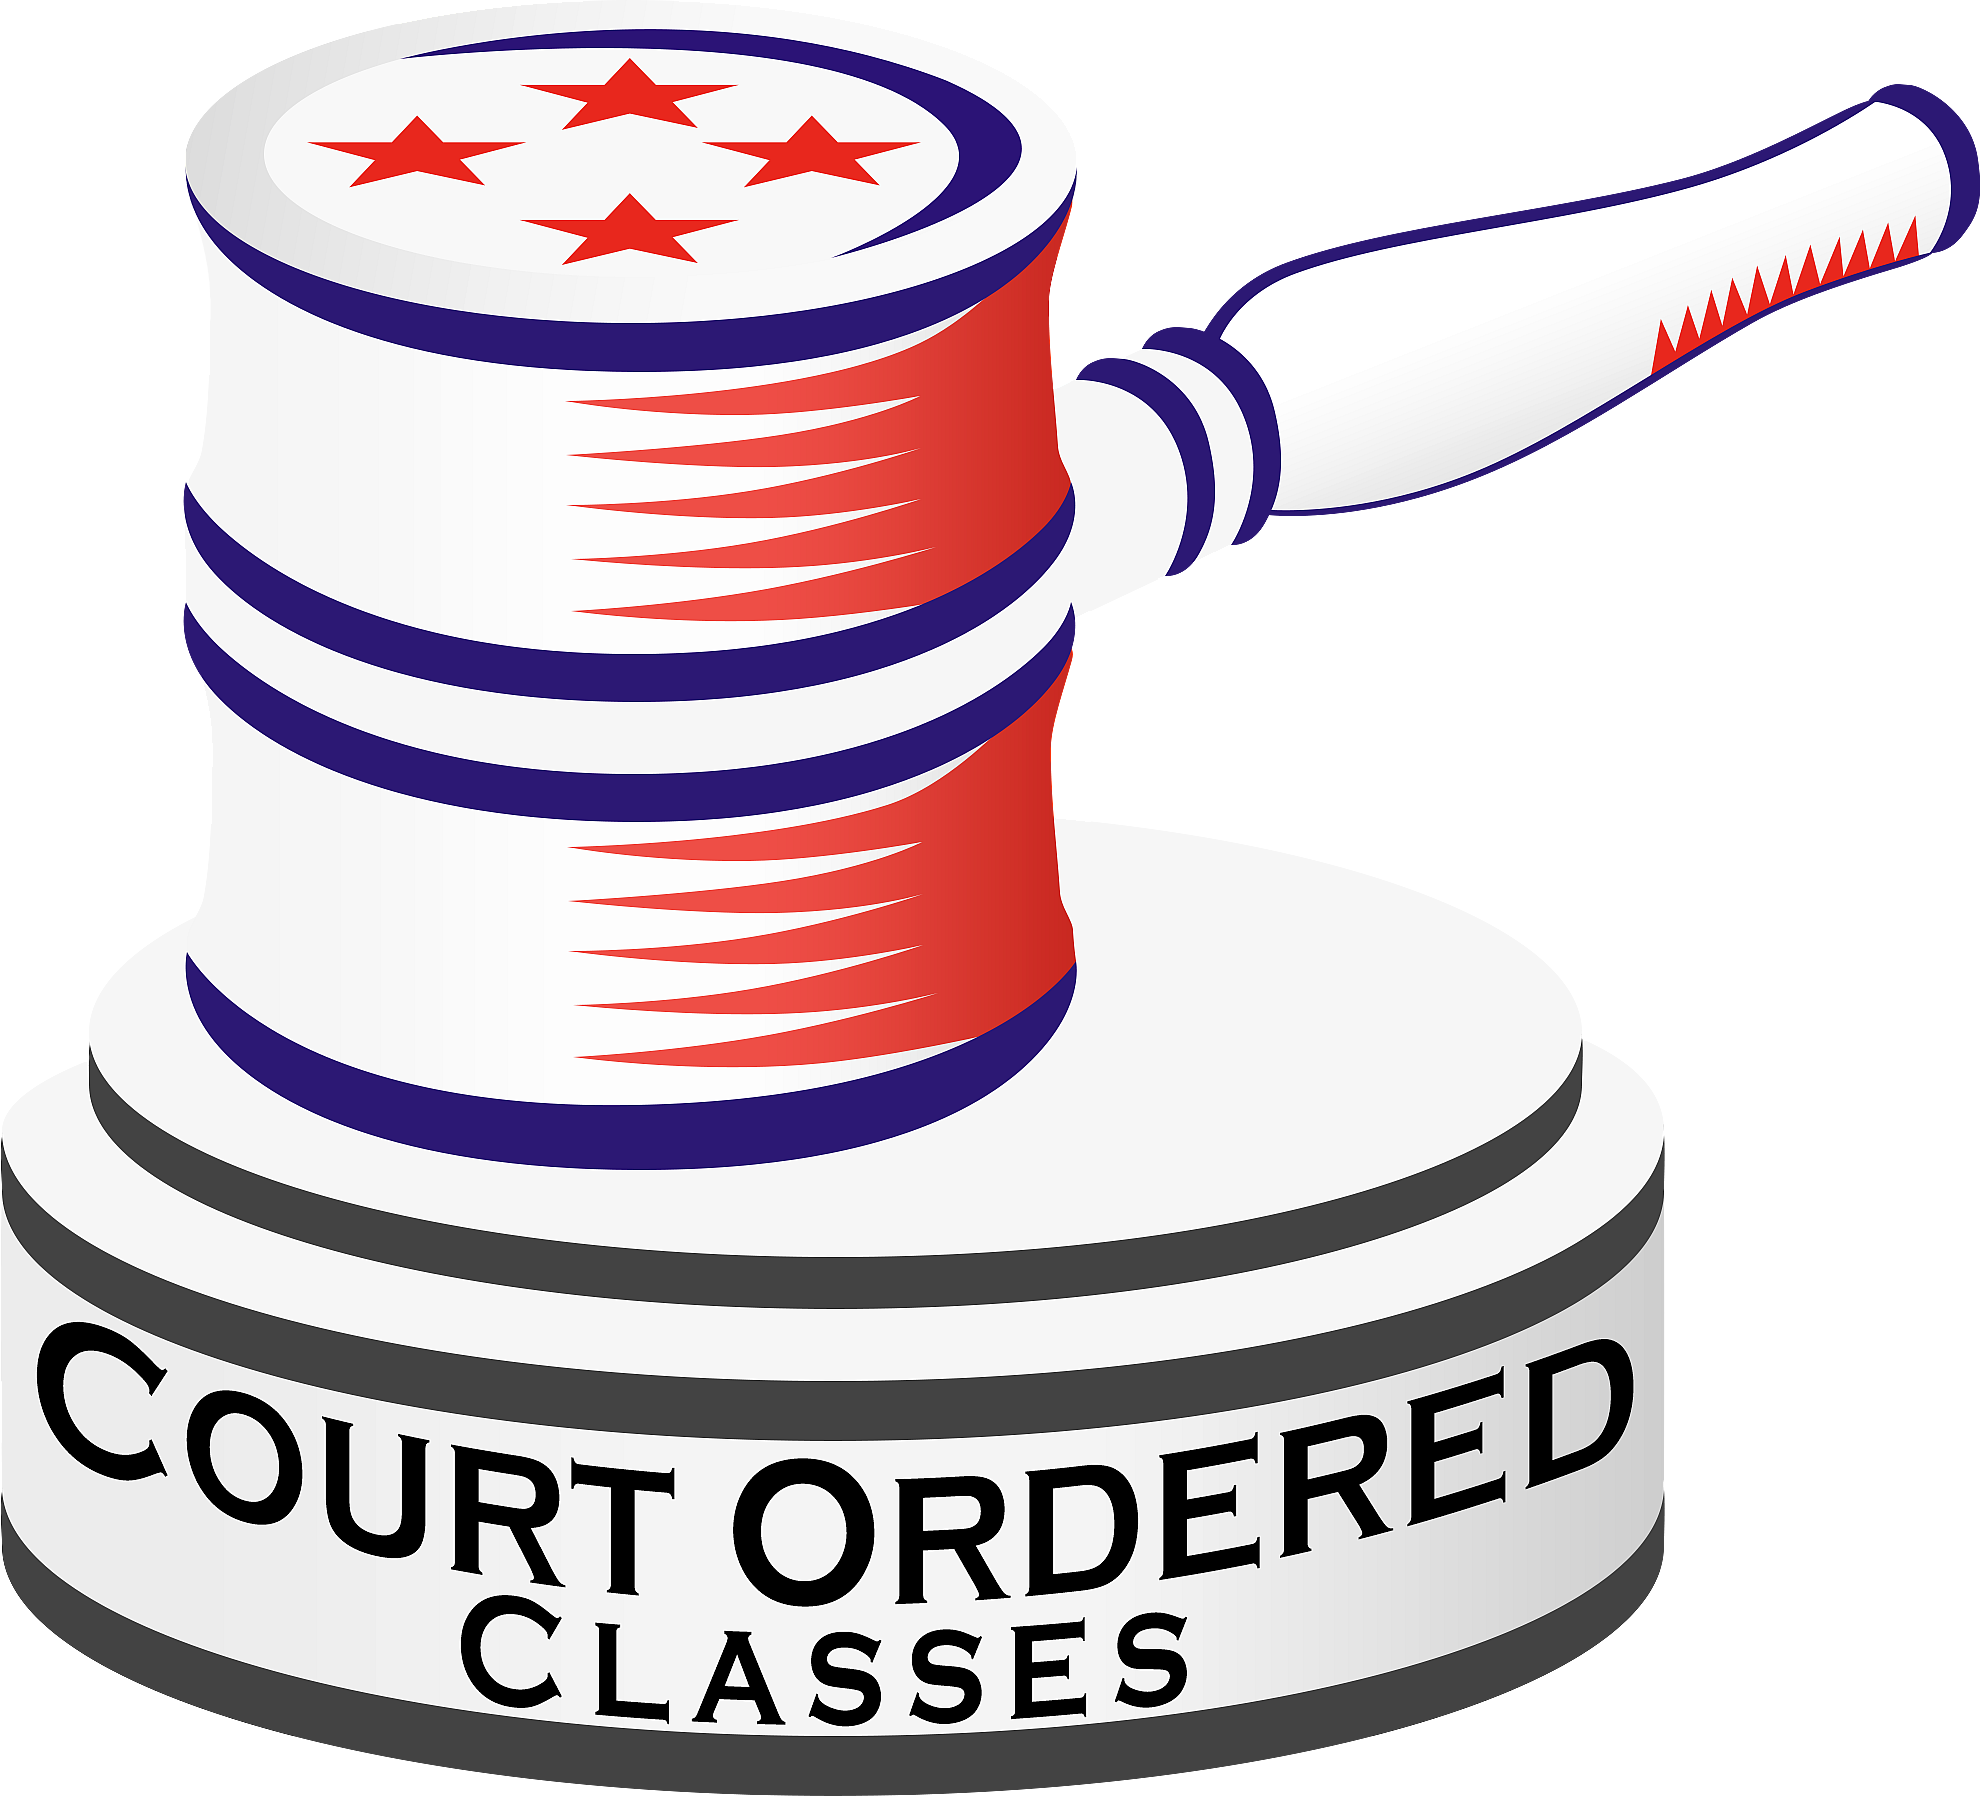 Court Ordered Classes are court approved domestic violence classes, anger management classes, battery classes, deferred entry of judgment classes, criminal behavior modification classes, theft prevention classes, divorce classes and parenting classes